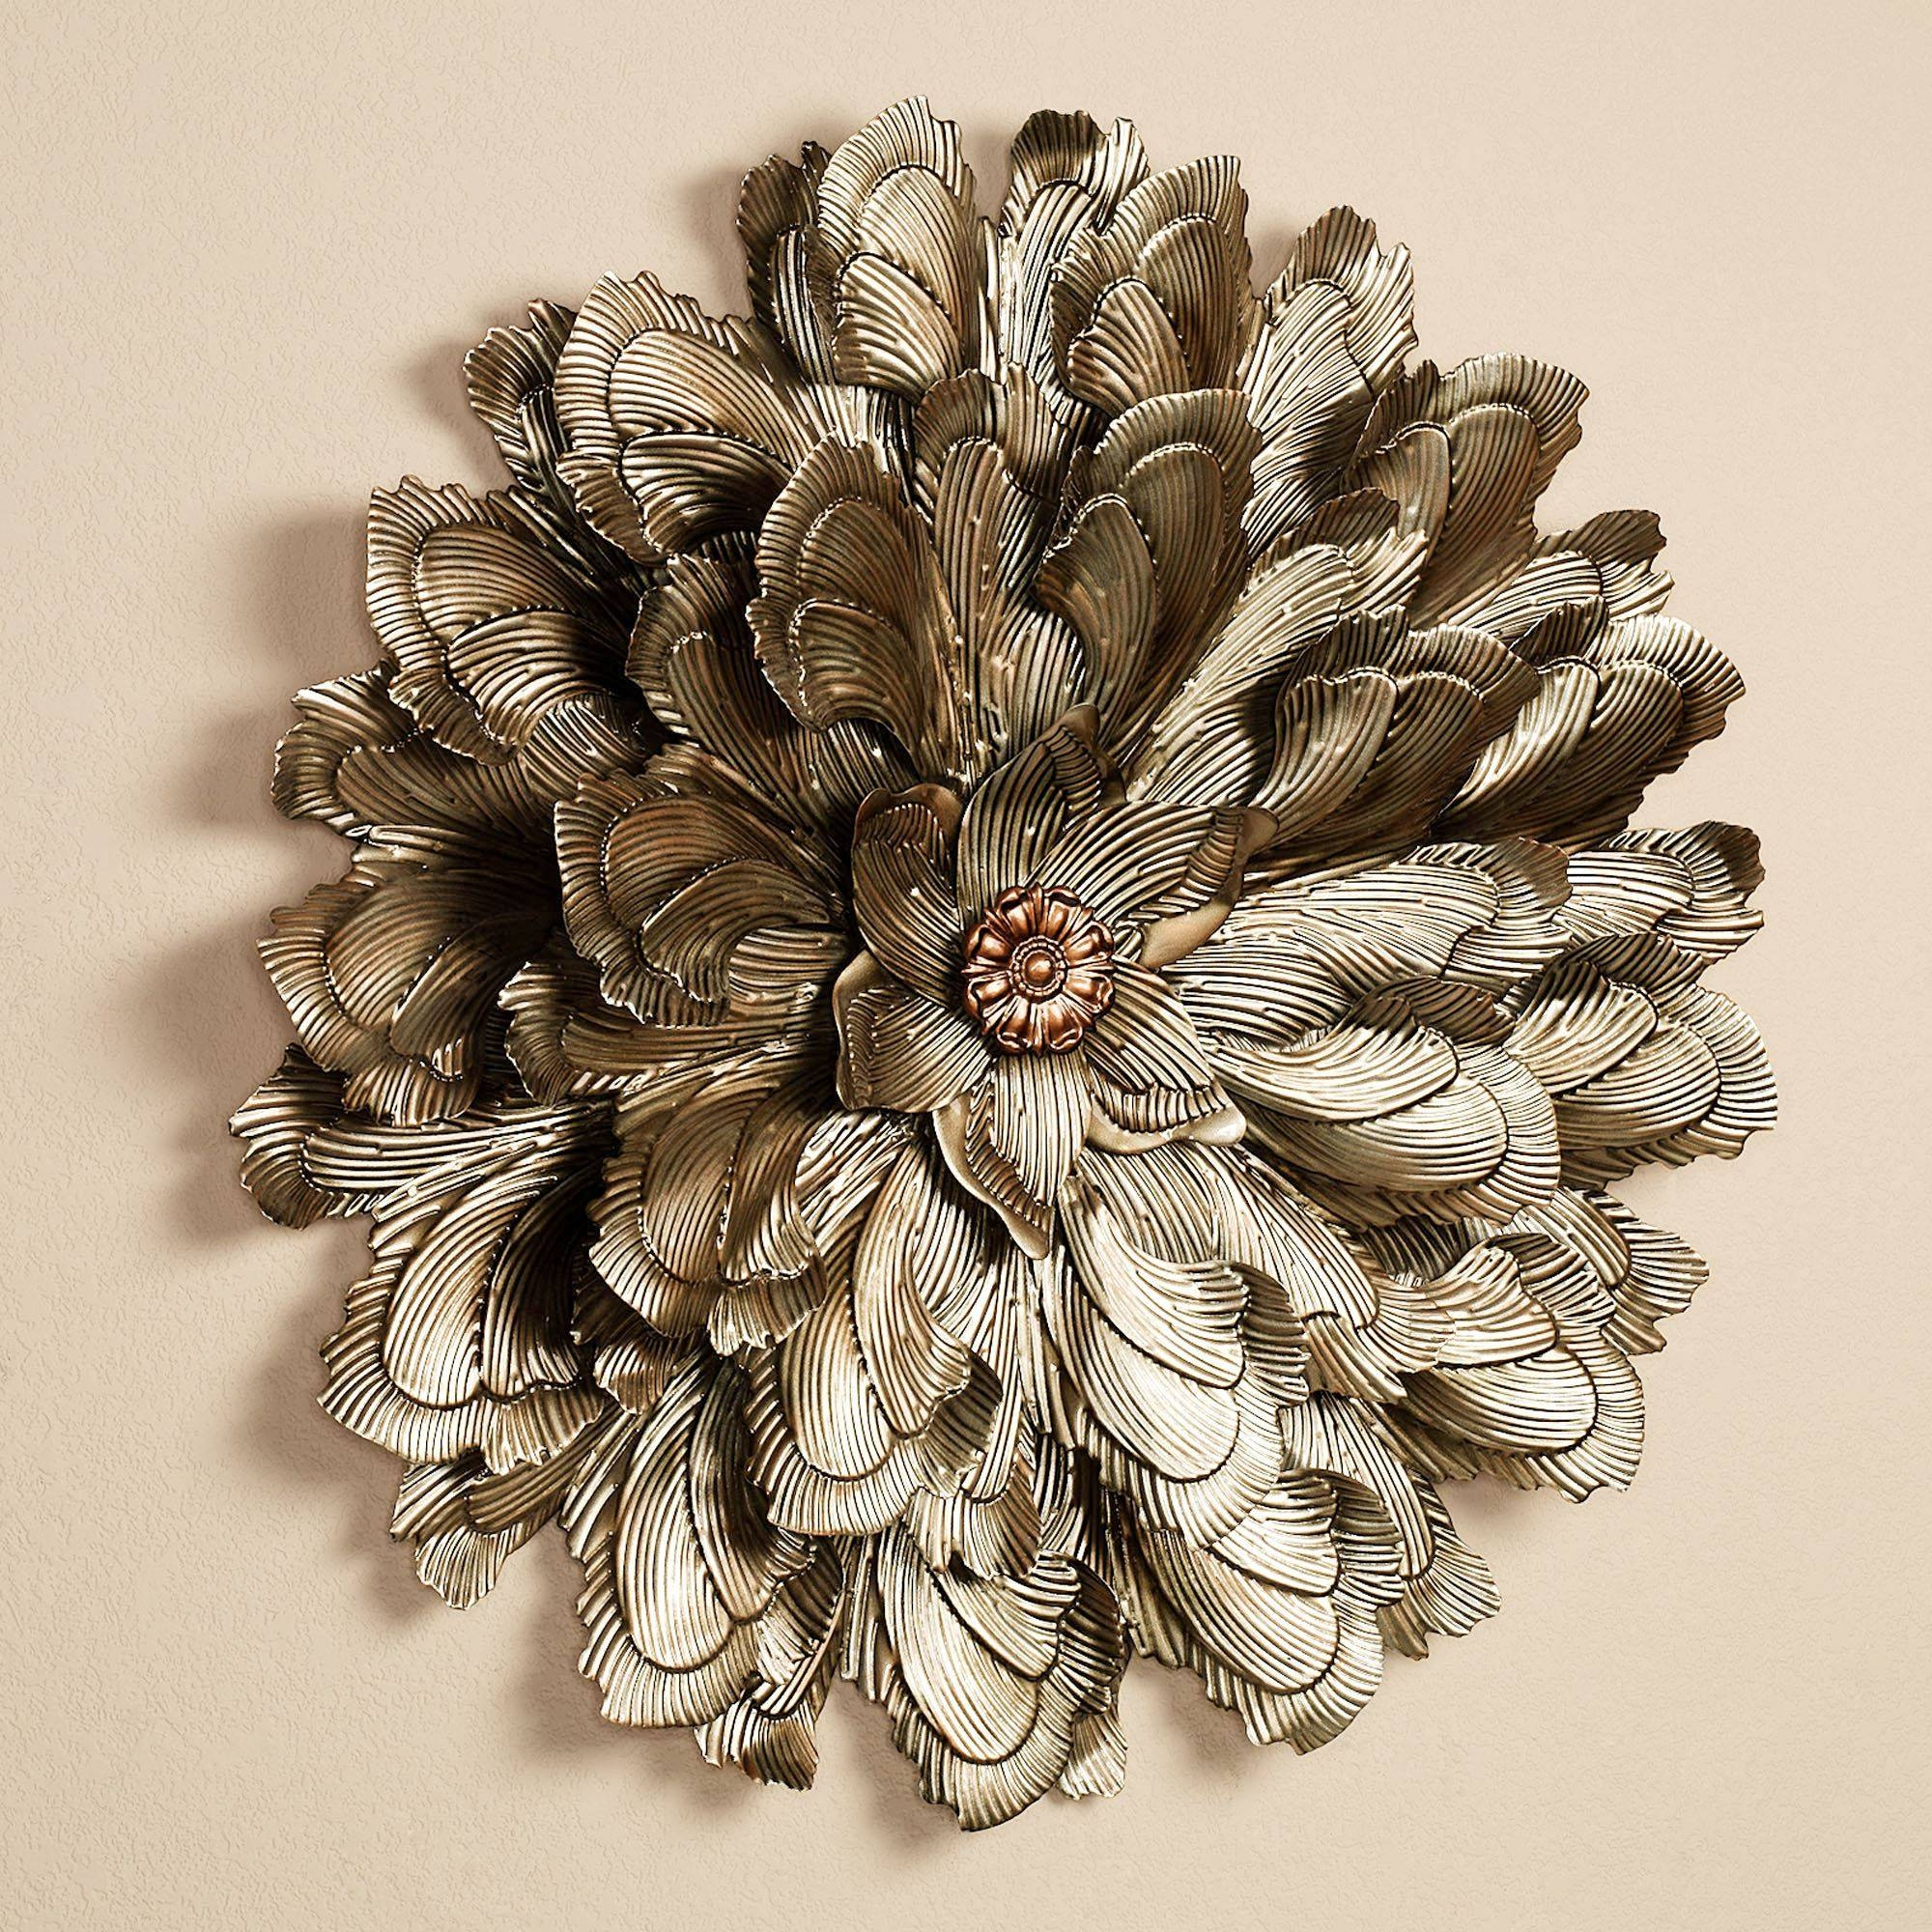 Delicate Flower Blossom Metal Wall Sculpture Intended For Most Recent Purple Flower Metal Wall Art (View 4 of 25)